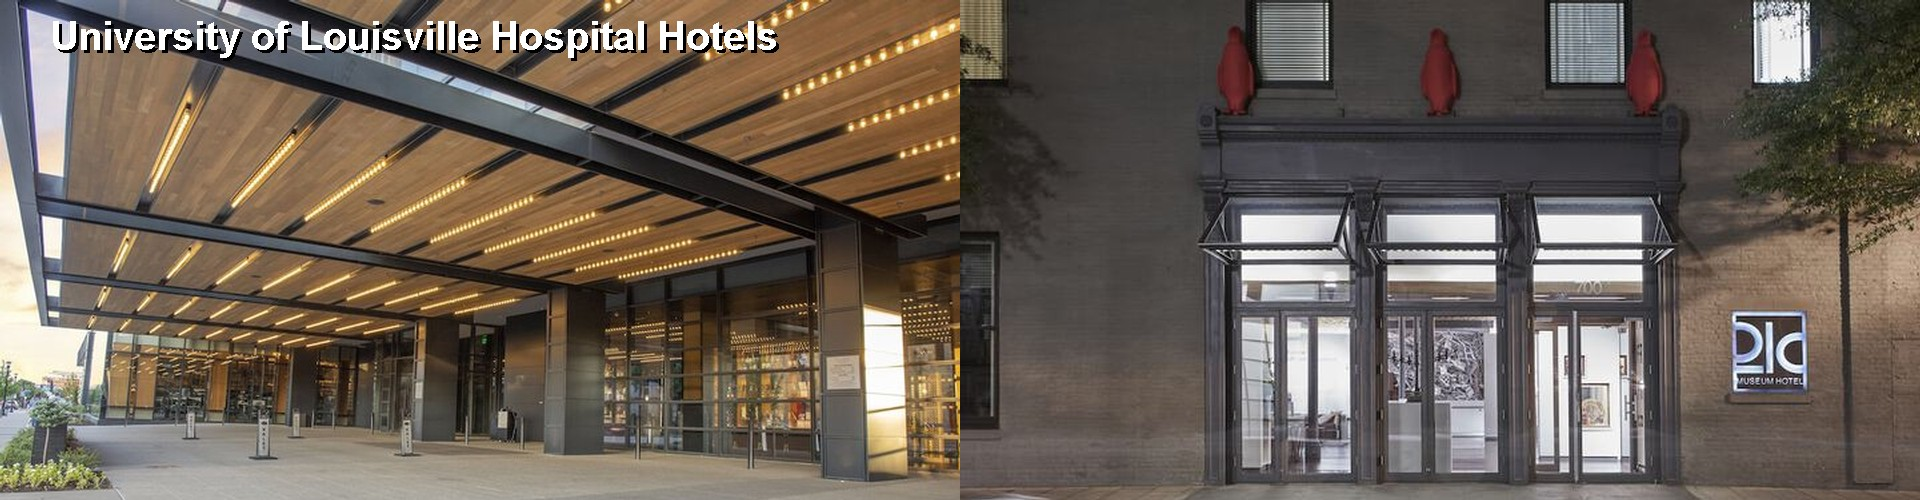 $48+ Hotels Near University of Louisville Hospital KY